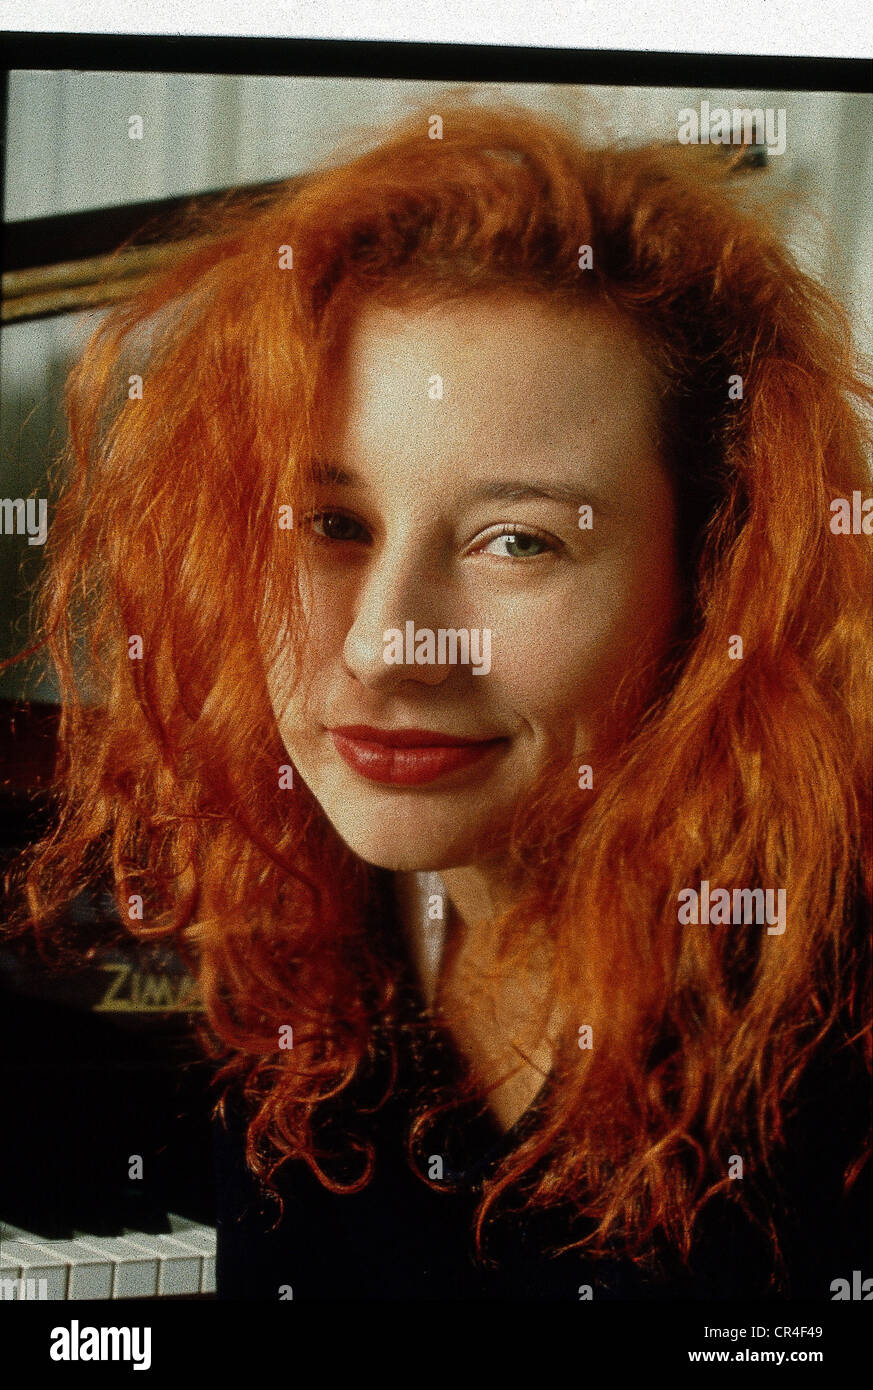 Amos, Tori, * 22.8.1963, US singer, portrait, circa 1992, Additional-Rights-Clearances-NA - Stock Image